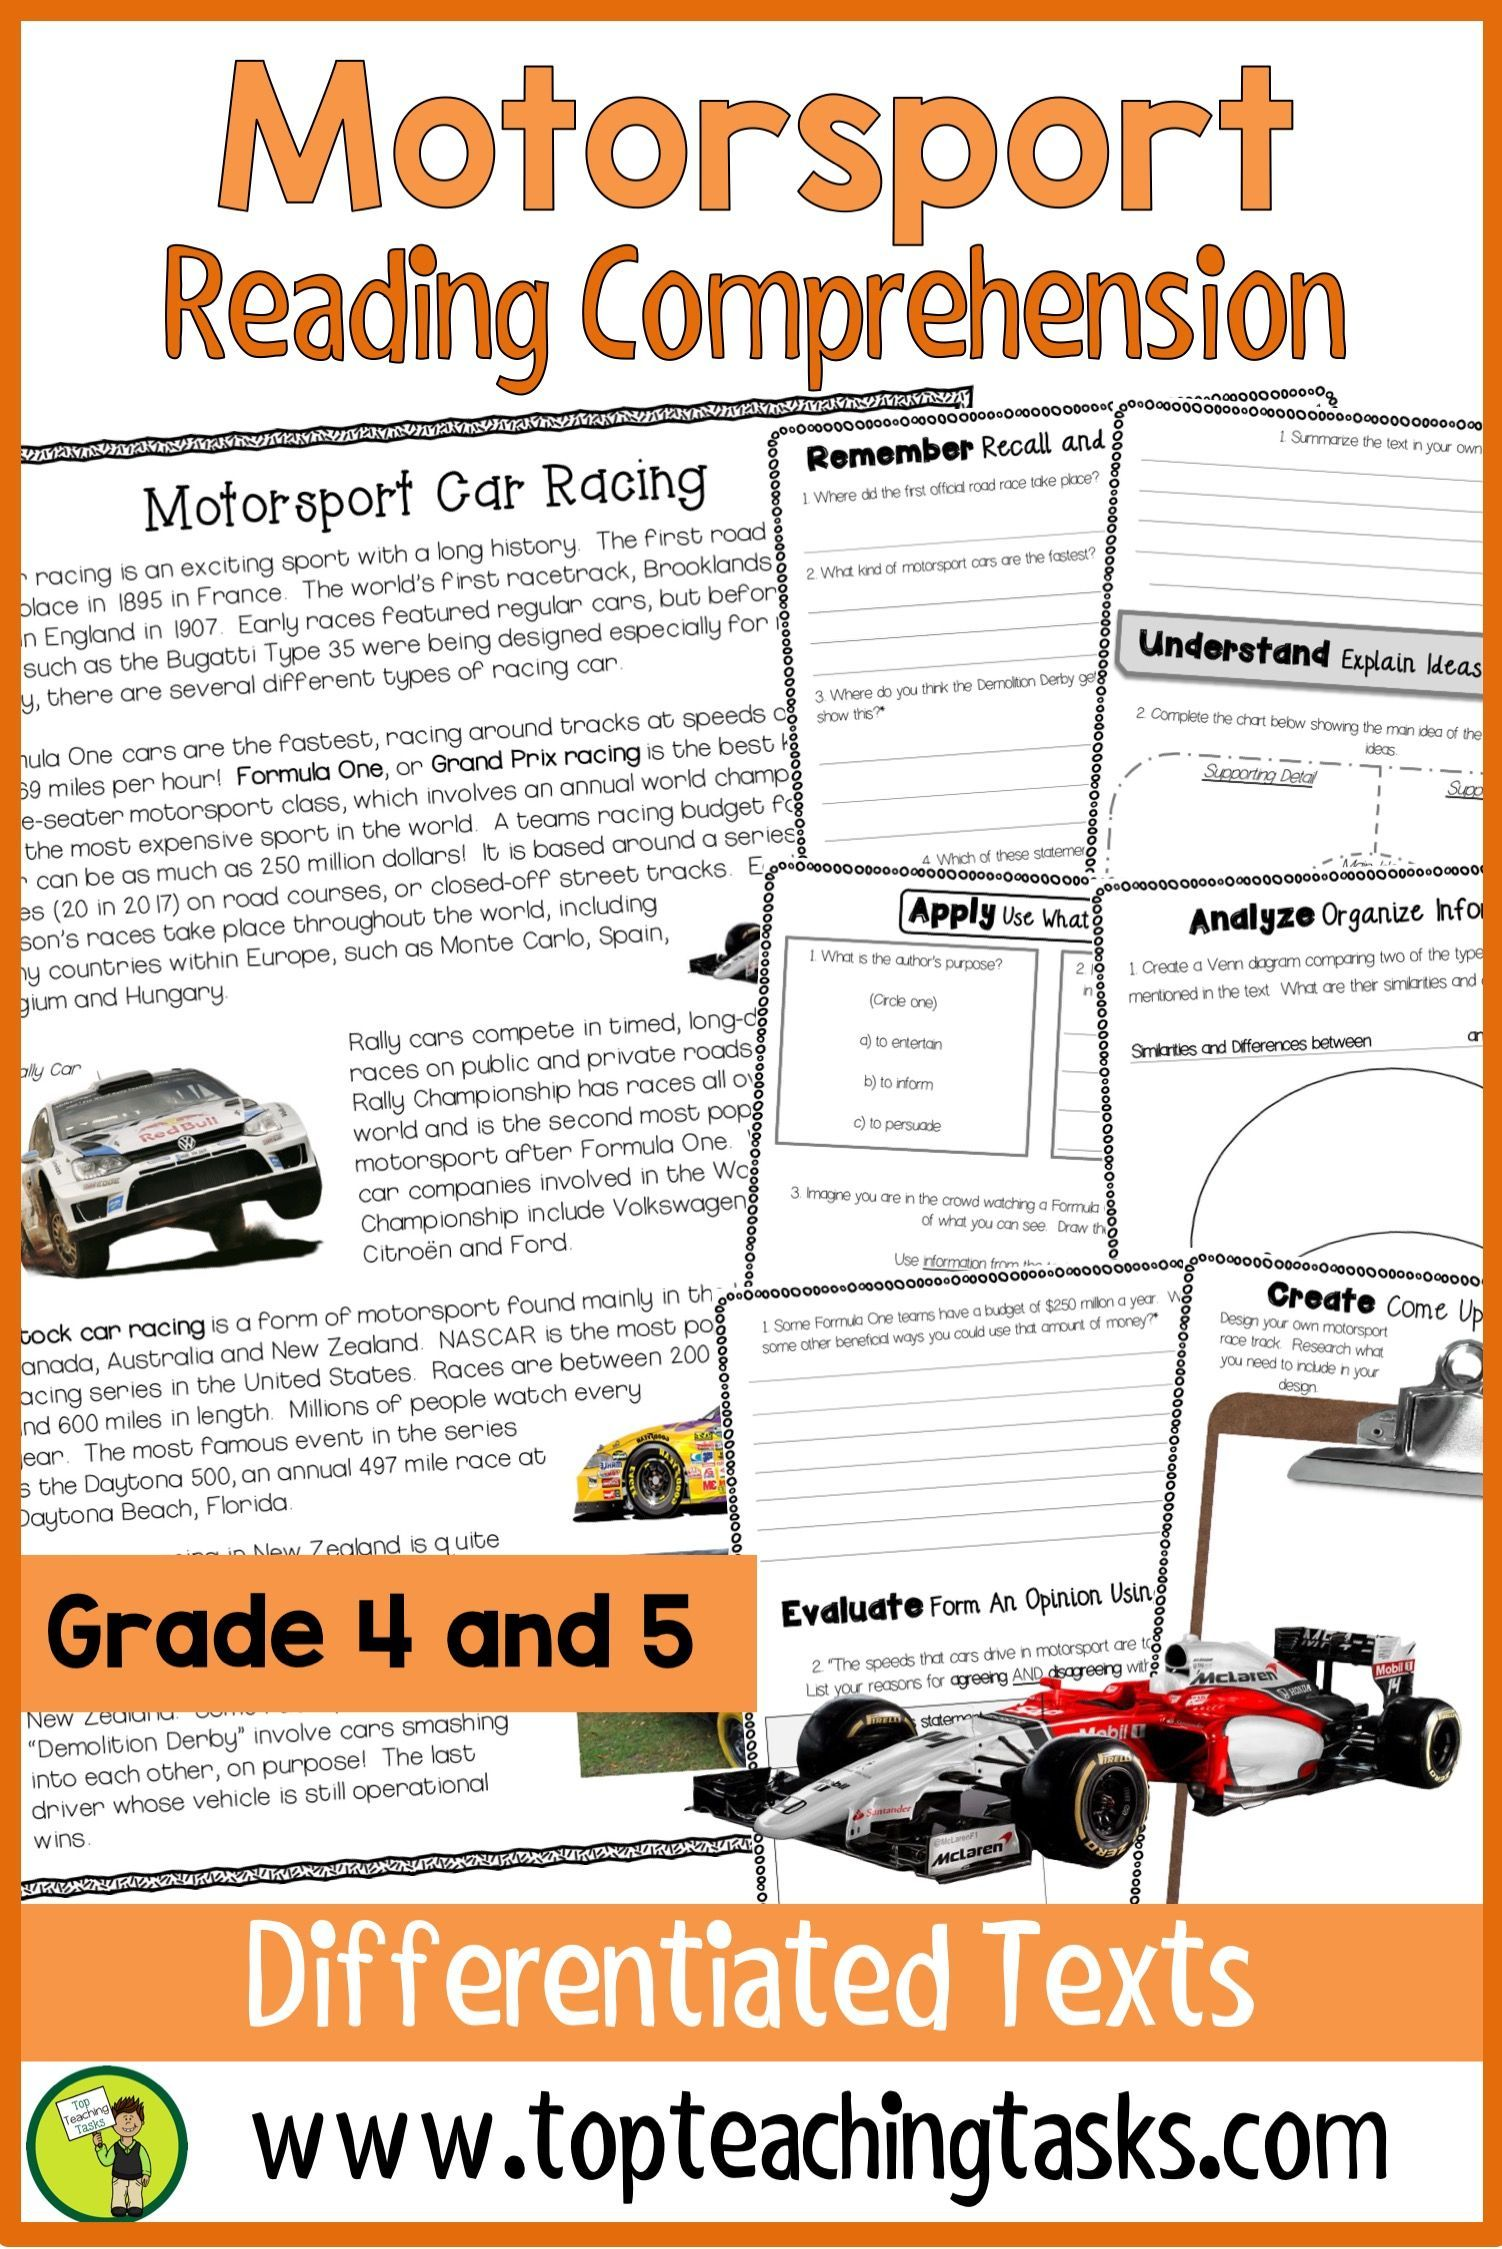 Motorsport Reading Comprehension Passages And Questions